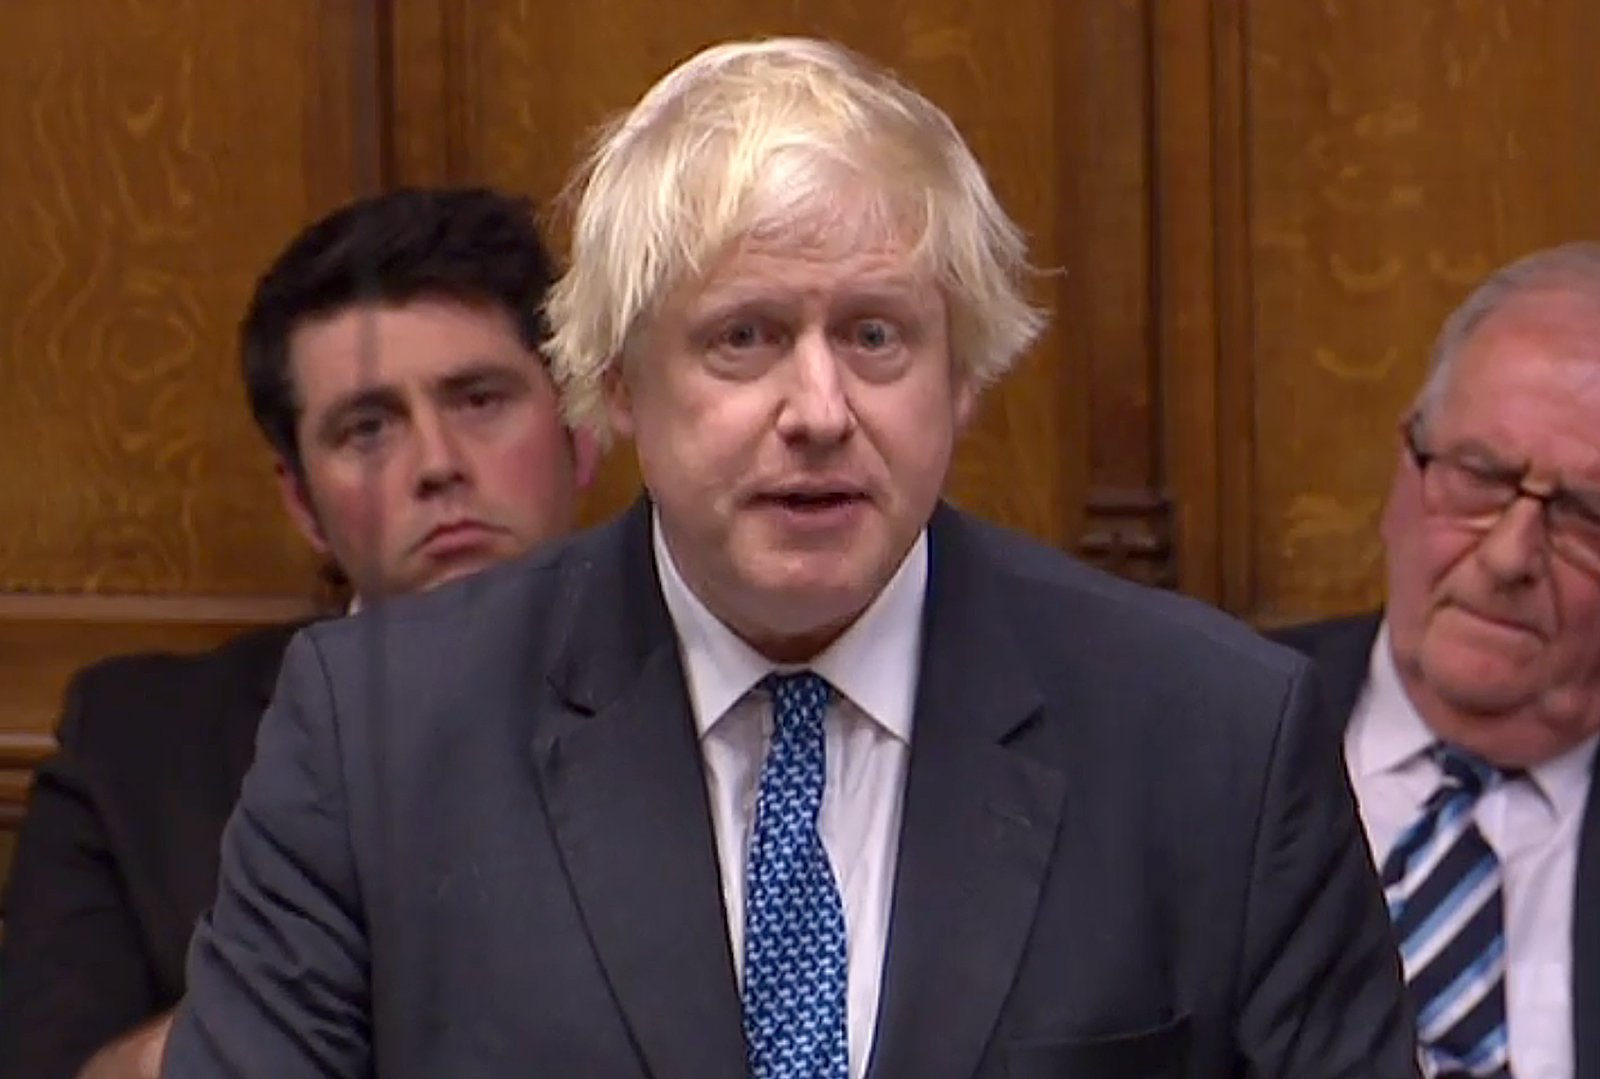 "A video grab from footage broadcast by the UK Parliament's Parliamentary Recording Unit (PRU) shows Britain's former Foreign Sectretary Boris Johnson as he speaks in the House of Commons in London on December 4, 2018, during a debate on the Brexit withdrawal agreement, ahead of the 'Meaningful Vote'. - Britain's government suffered a stinging rebuke from MPs ahead of Tuesday's momentous Brexit debate, exposing Prime Minister Theresa May's lack of support in parliament. The House of Commons voted 311-293 to censure the government for failing to publish its full legal advice about the divorce deal May struck last month with the European Union. (Photo by HO / PRU / AFP) / RESTRICTED TO EDITORIAL USE - NO USE FOR ENTERTAINMENT, SATIRICAL, ADVERTISING PURPOSES - MANDATORY CREDIT "" AFP PHOTO / PRU ""HO/AFP/Getty Images"